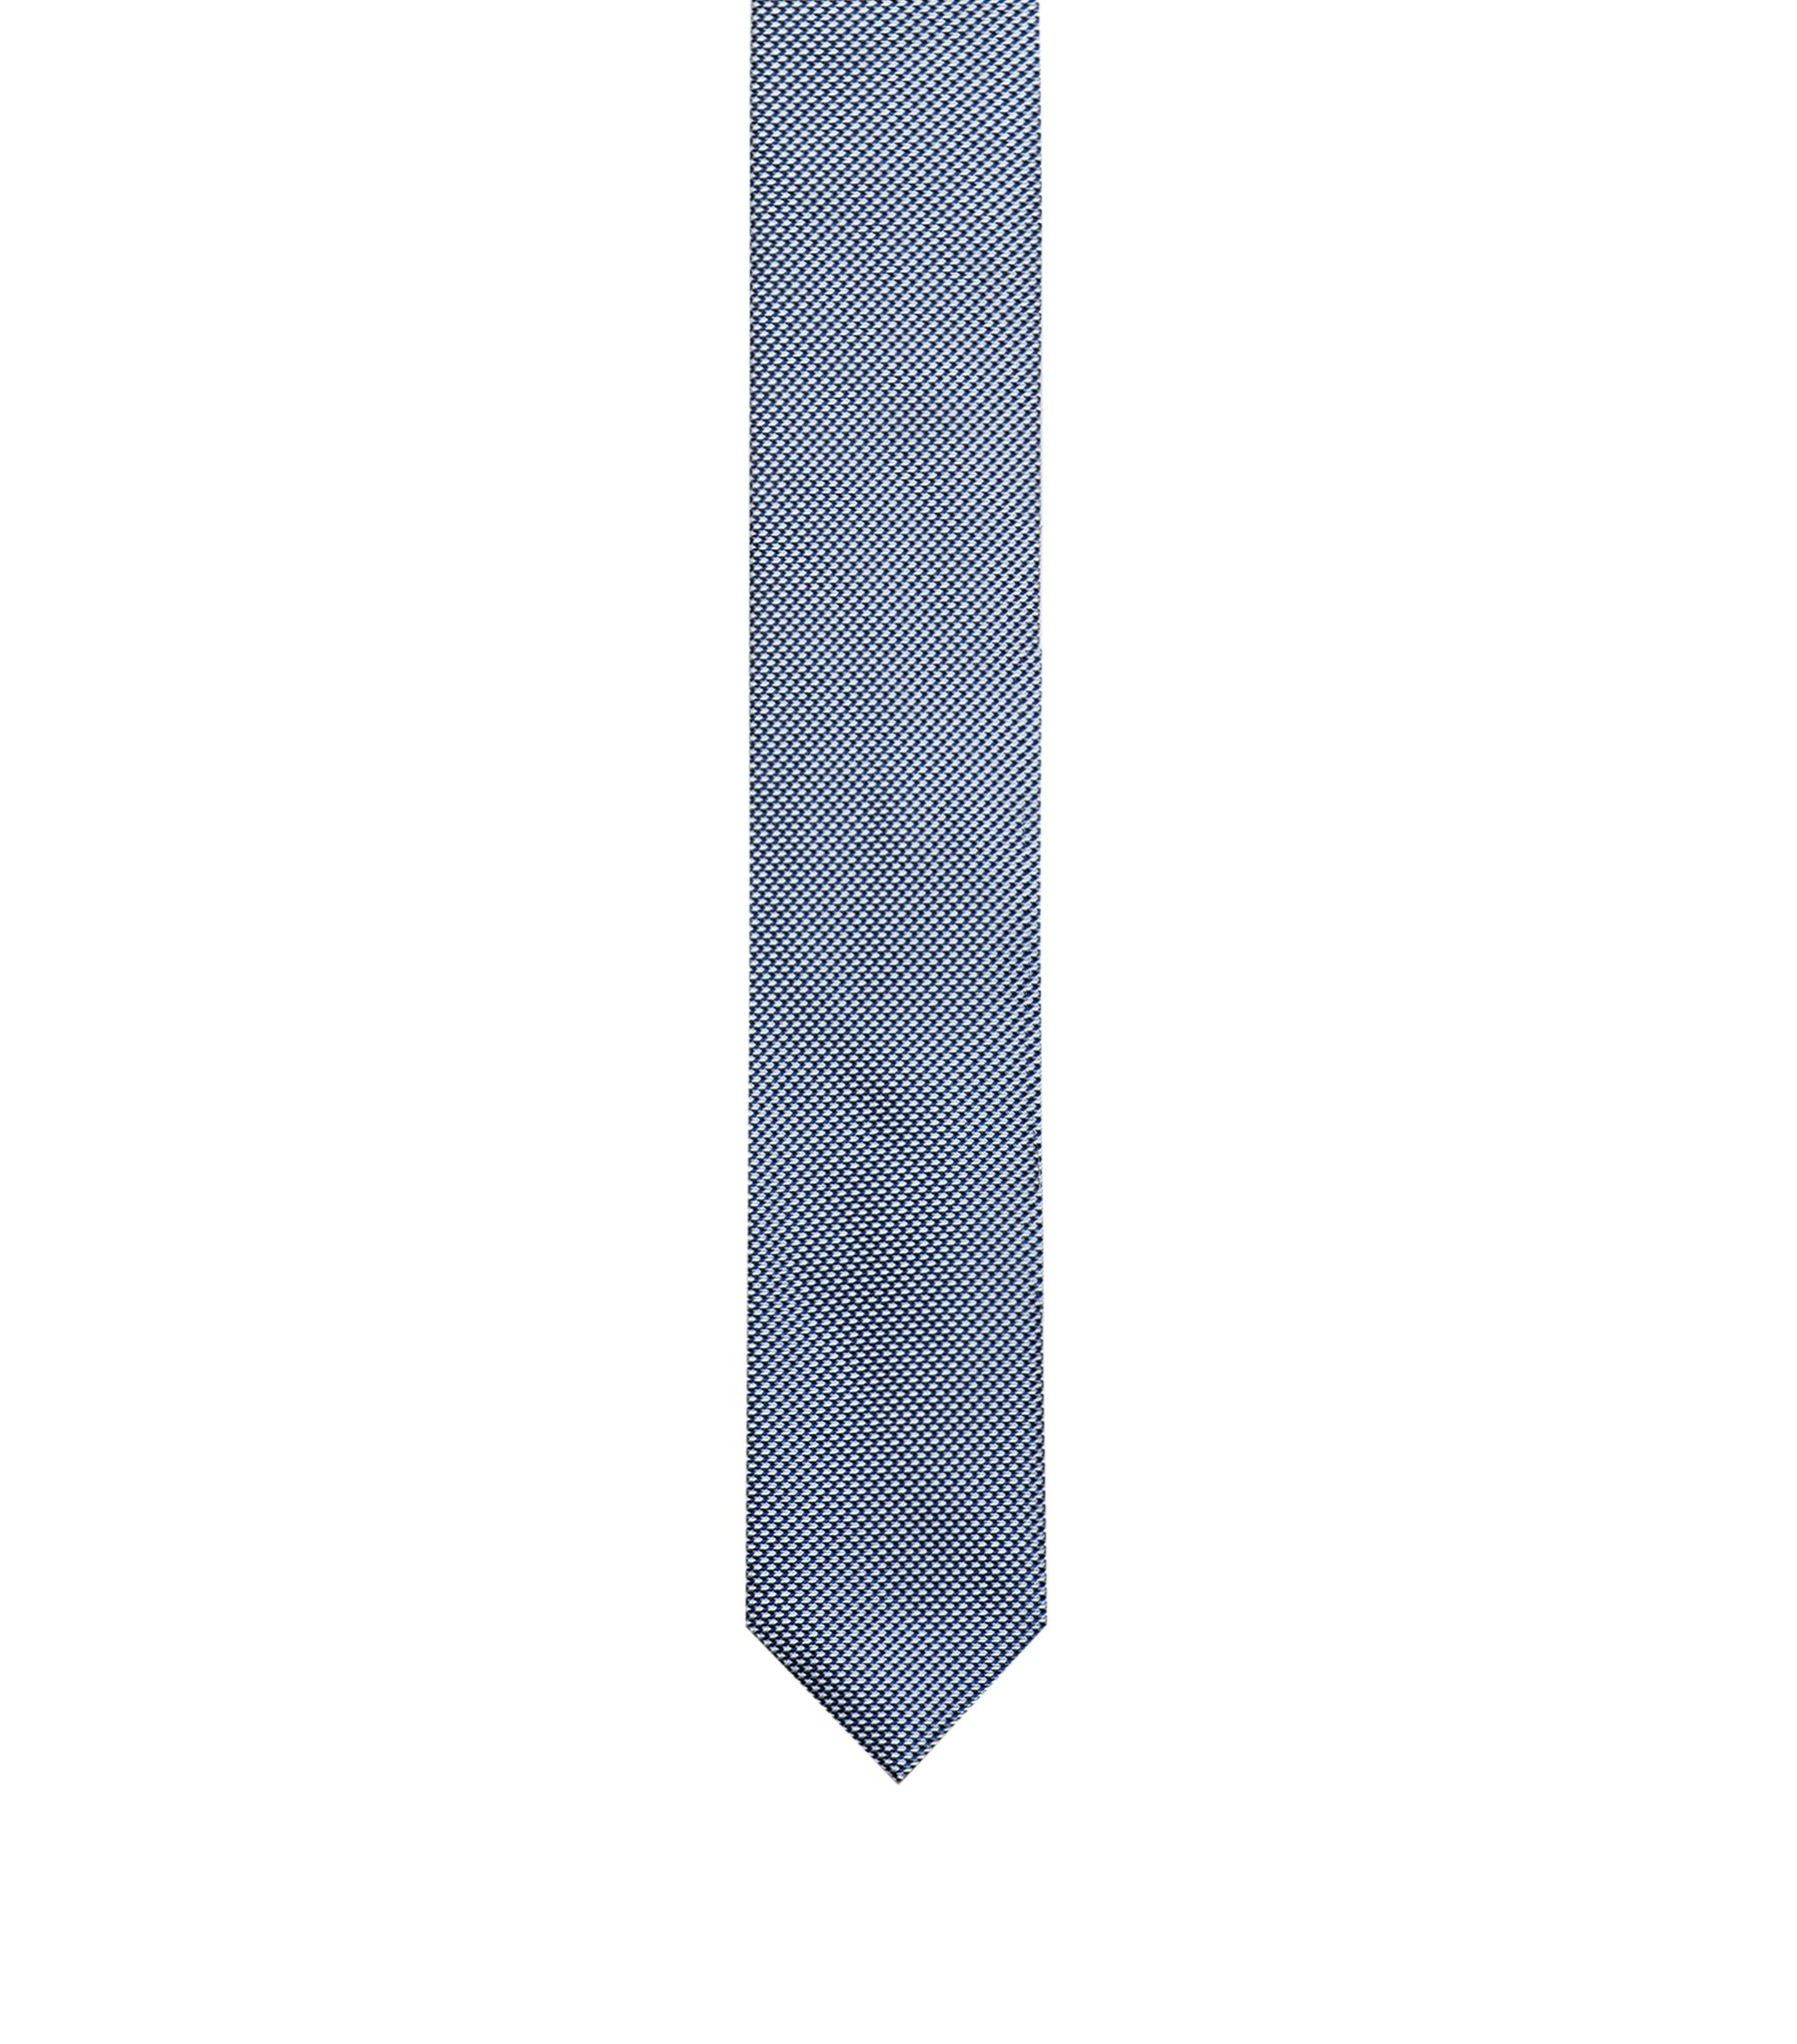 7cm tie in silk jacquard, Dark Blue